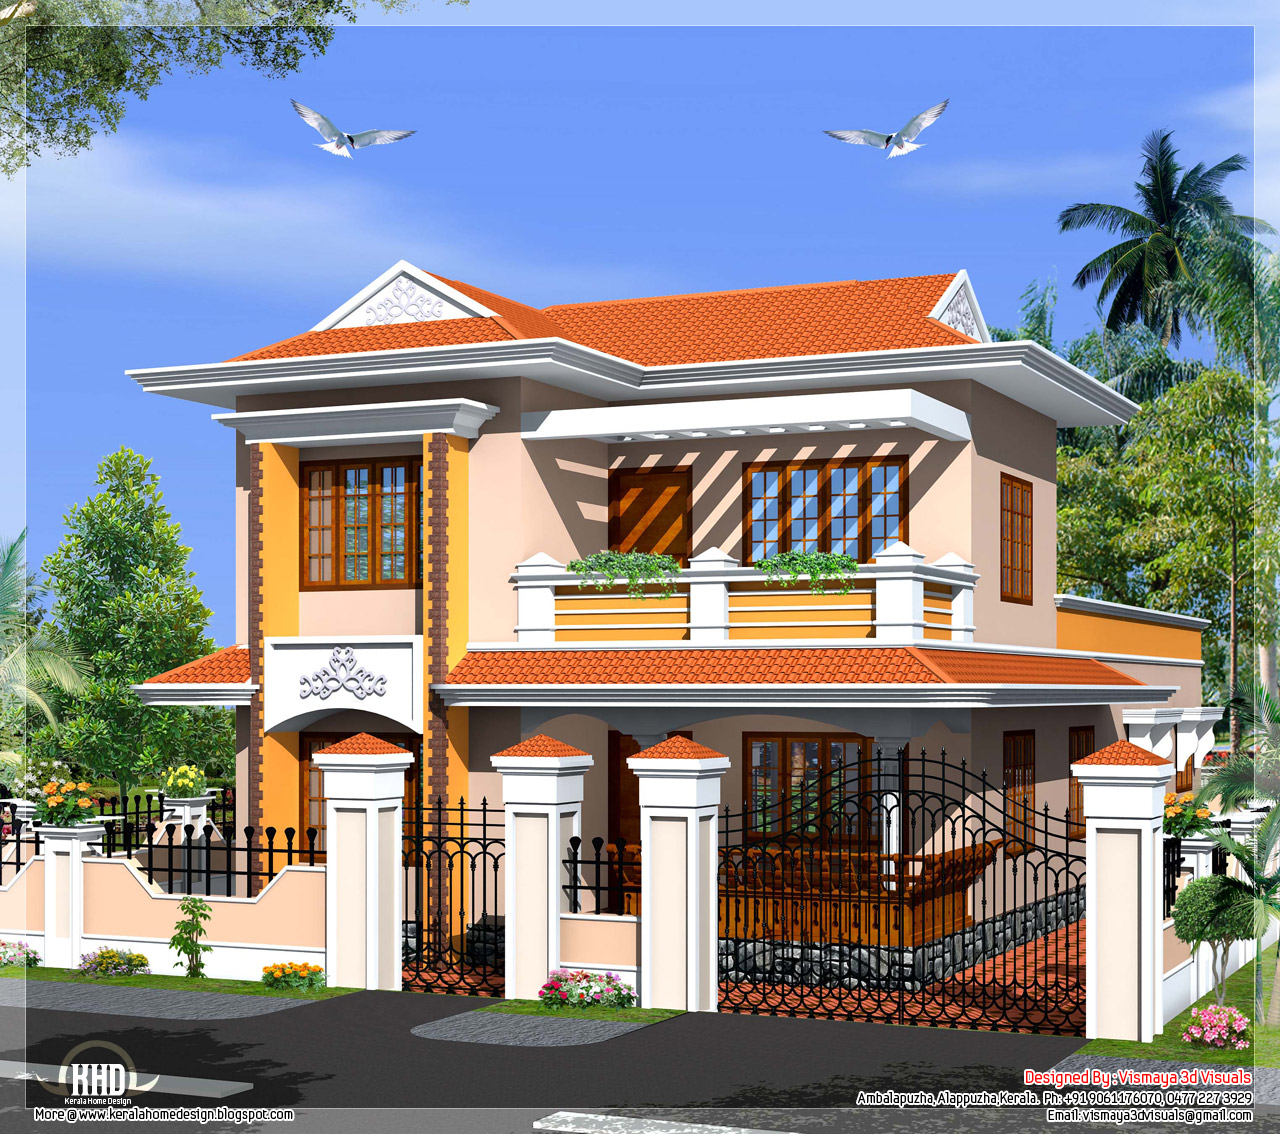 Kerala model villa  Facilities in this house. Kerala model villa in 2110 in square feet   House Design Plans